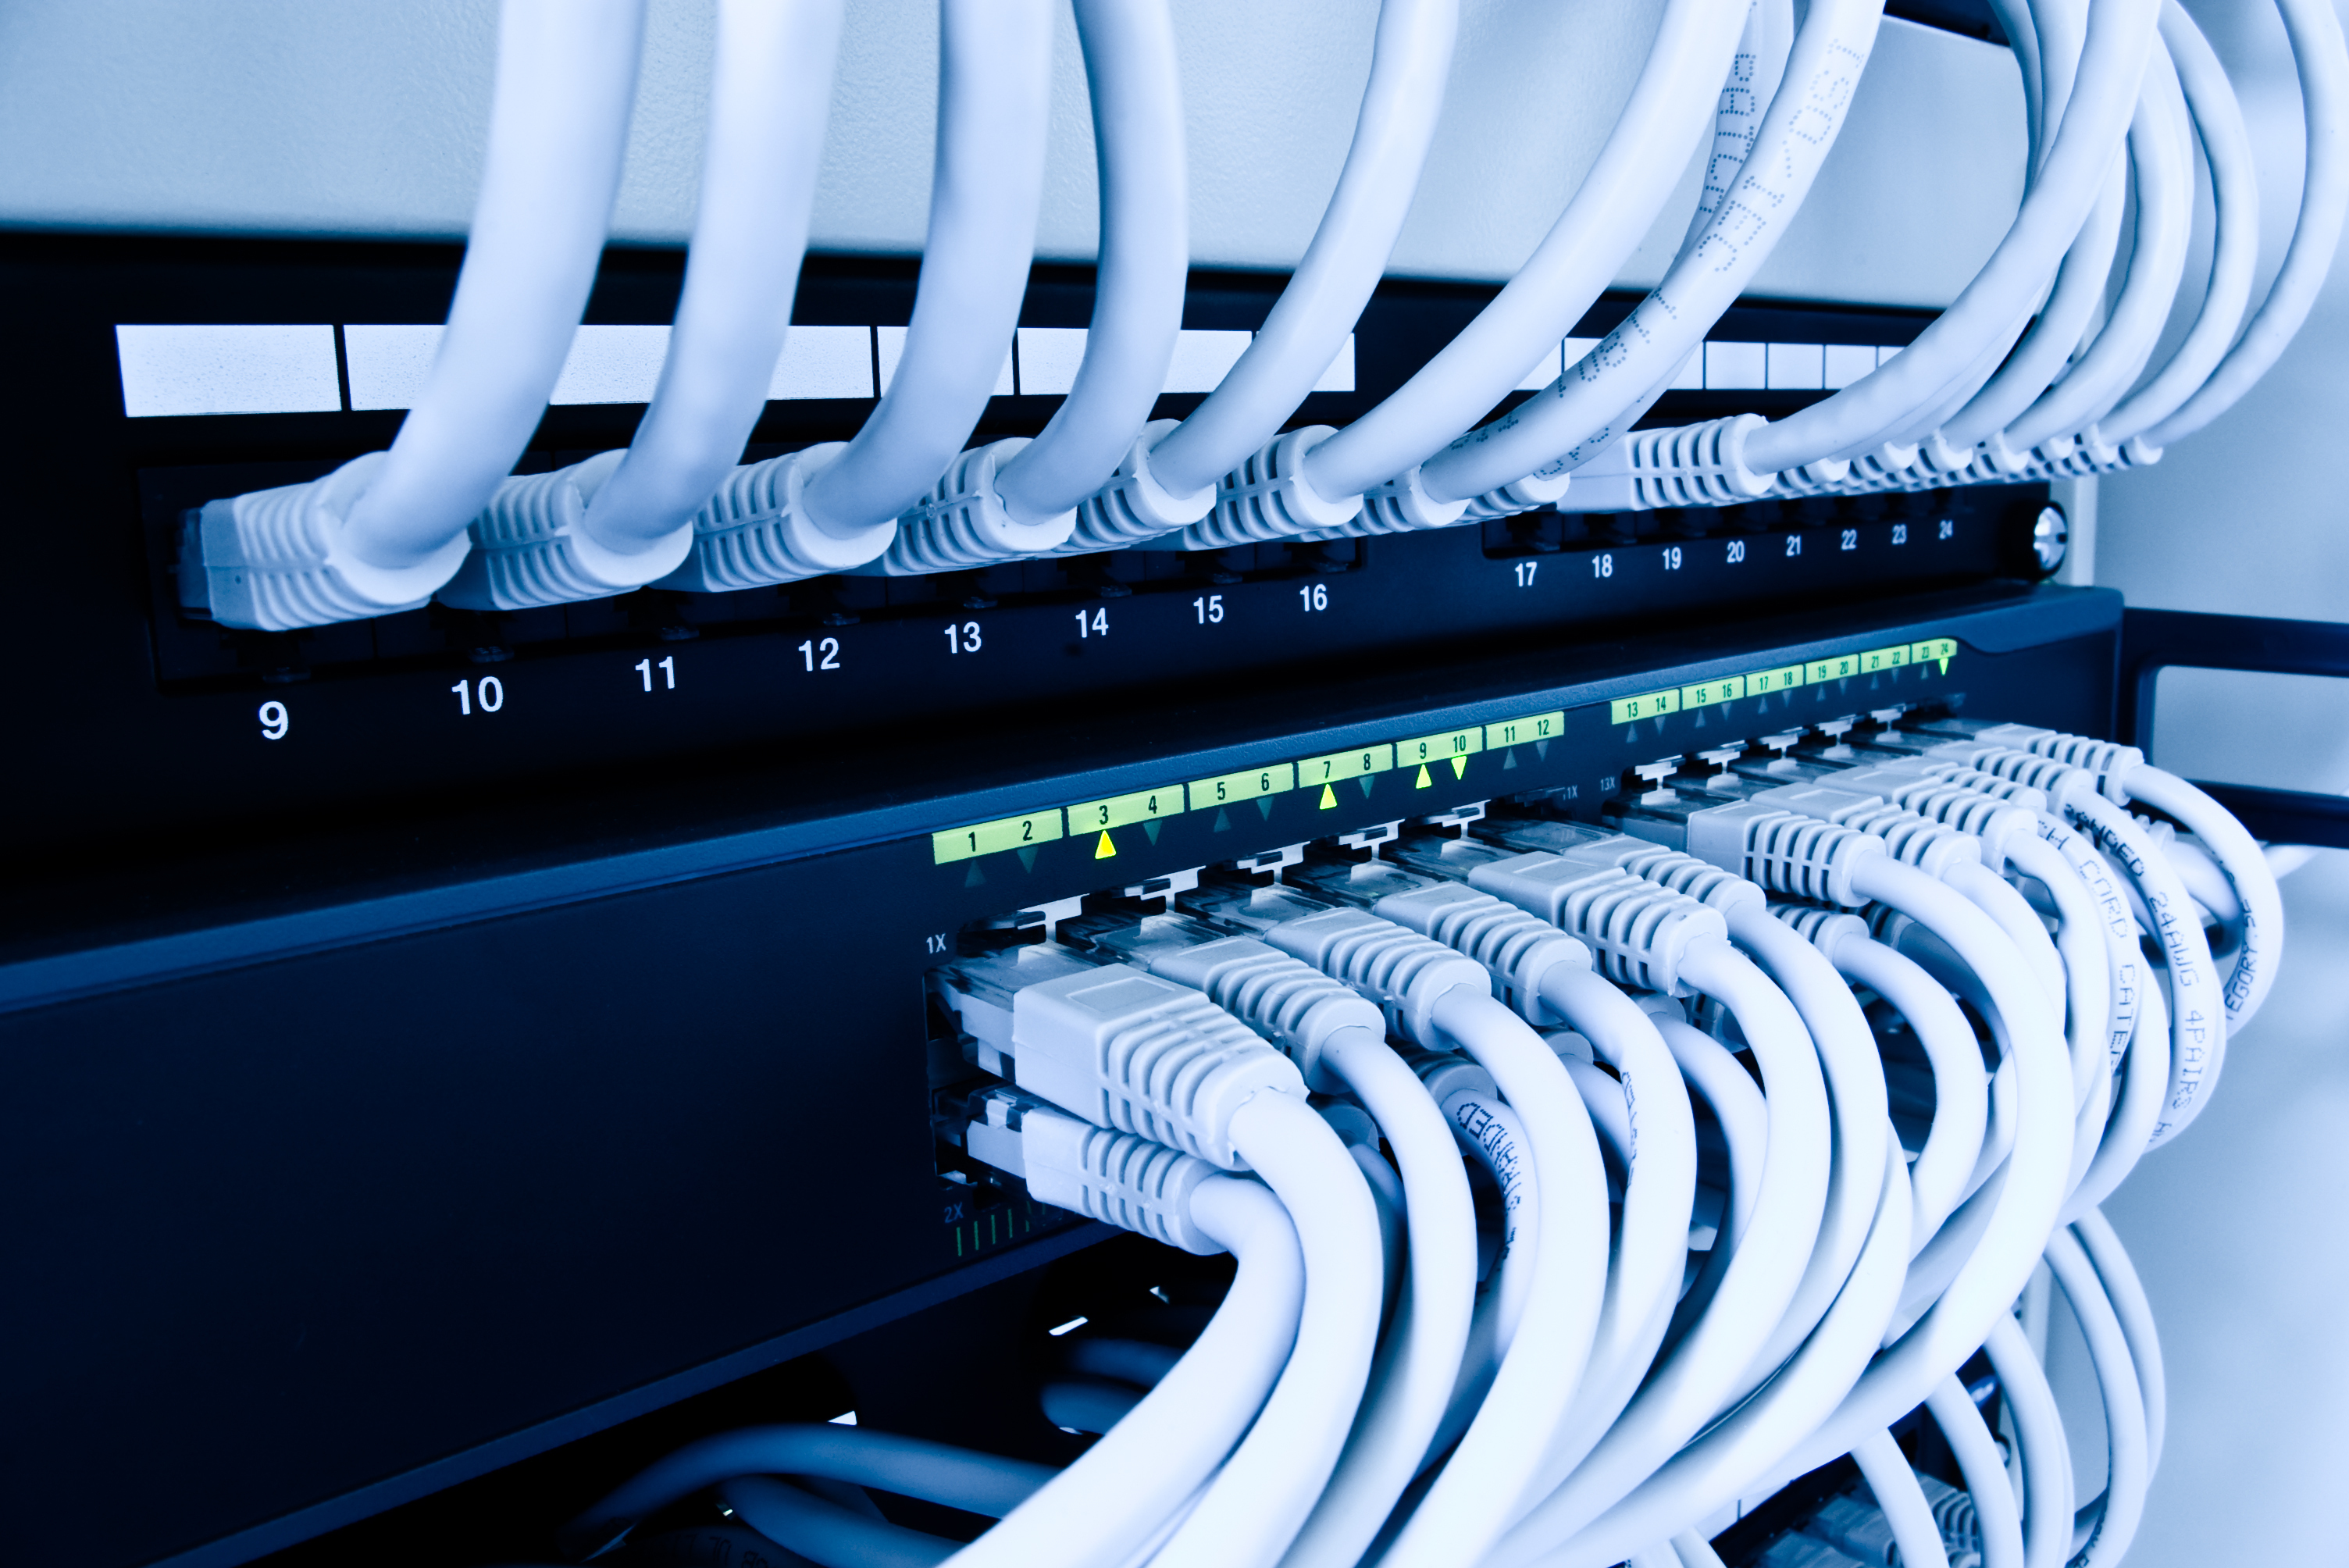 cables patch panel and network switch.jpg